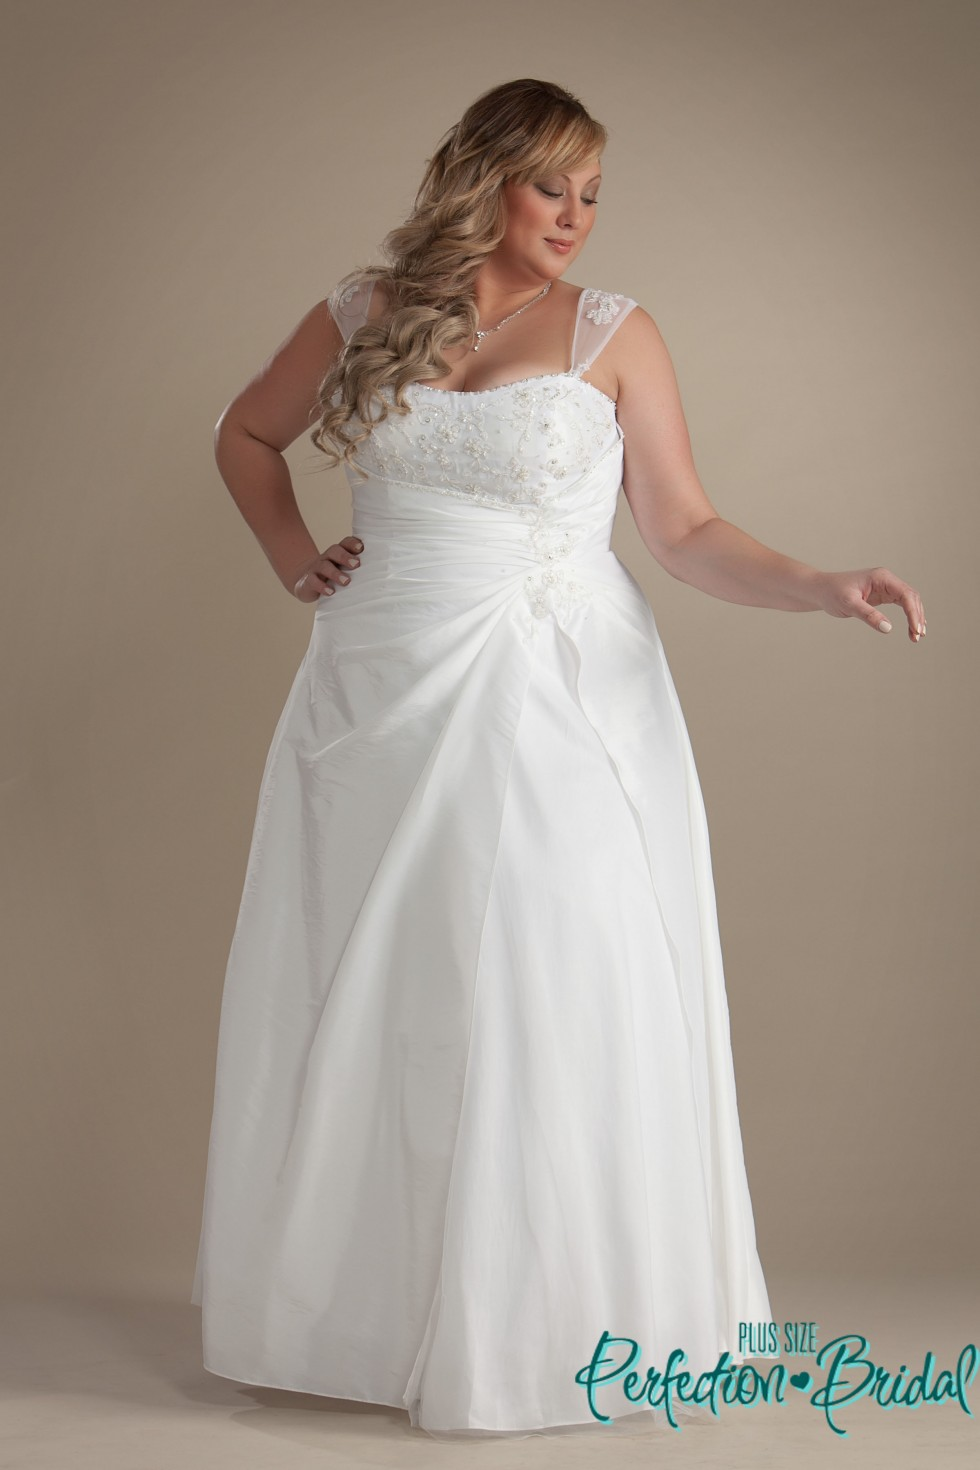 Cheap plus size wedding dress australia mini bridal for Where to buy cheap wedding dresses online